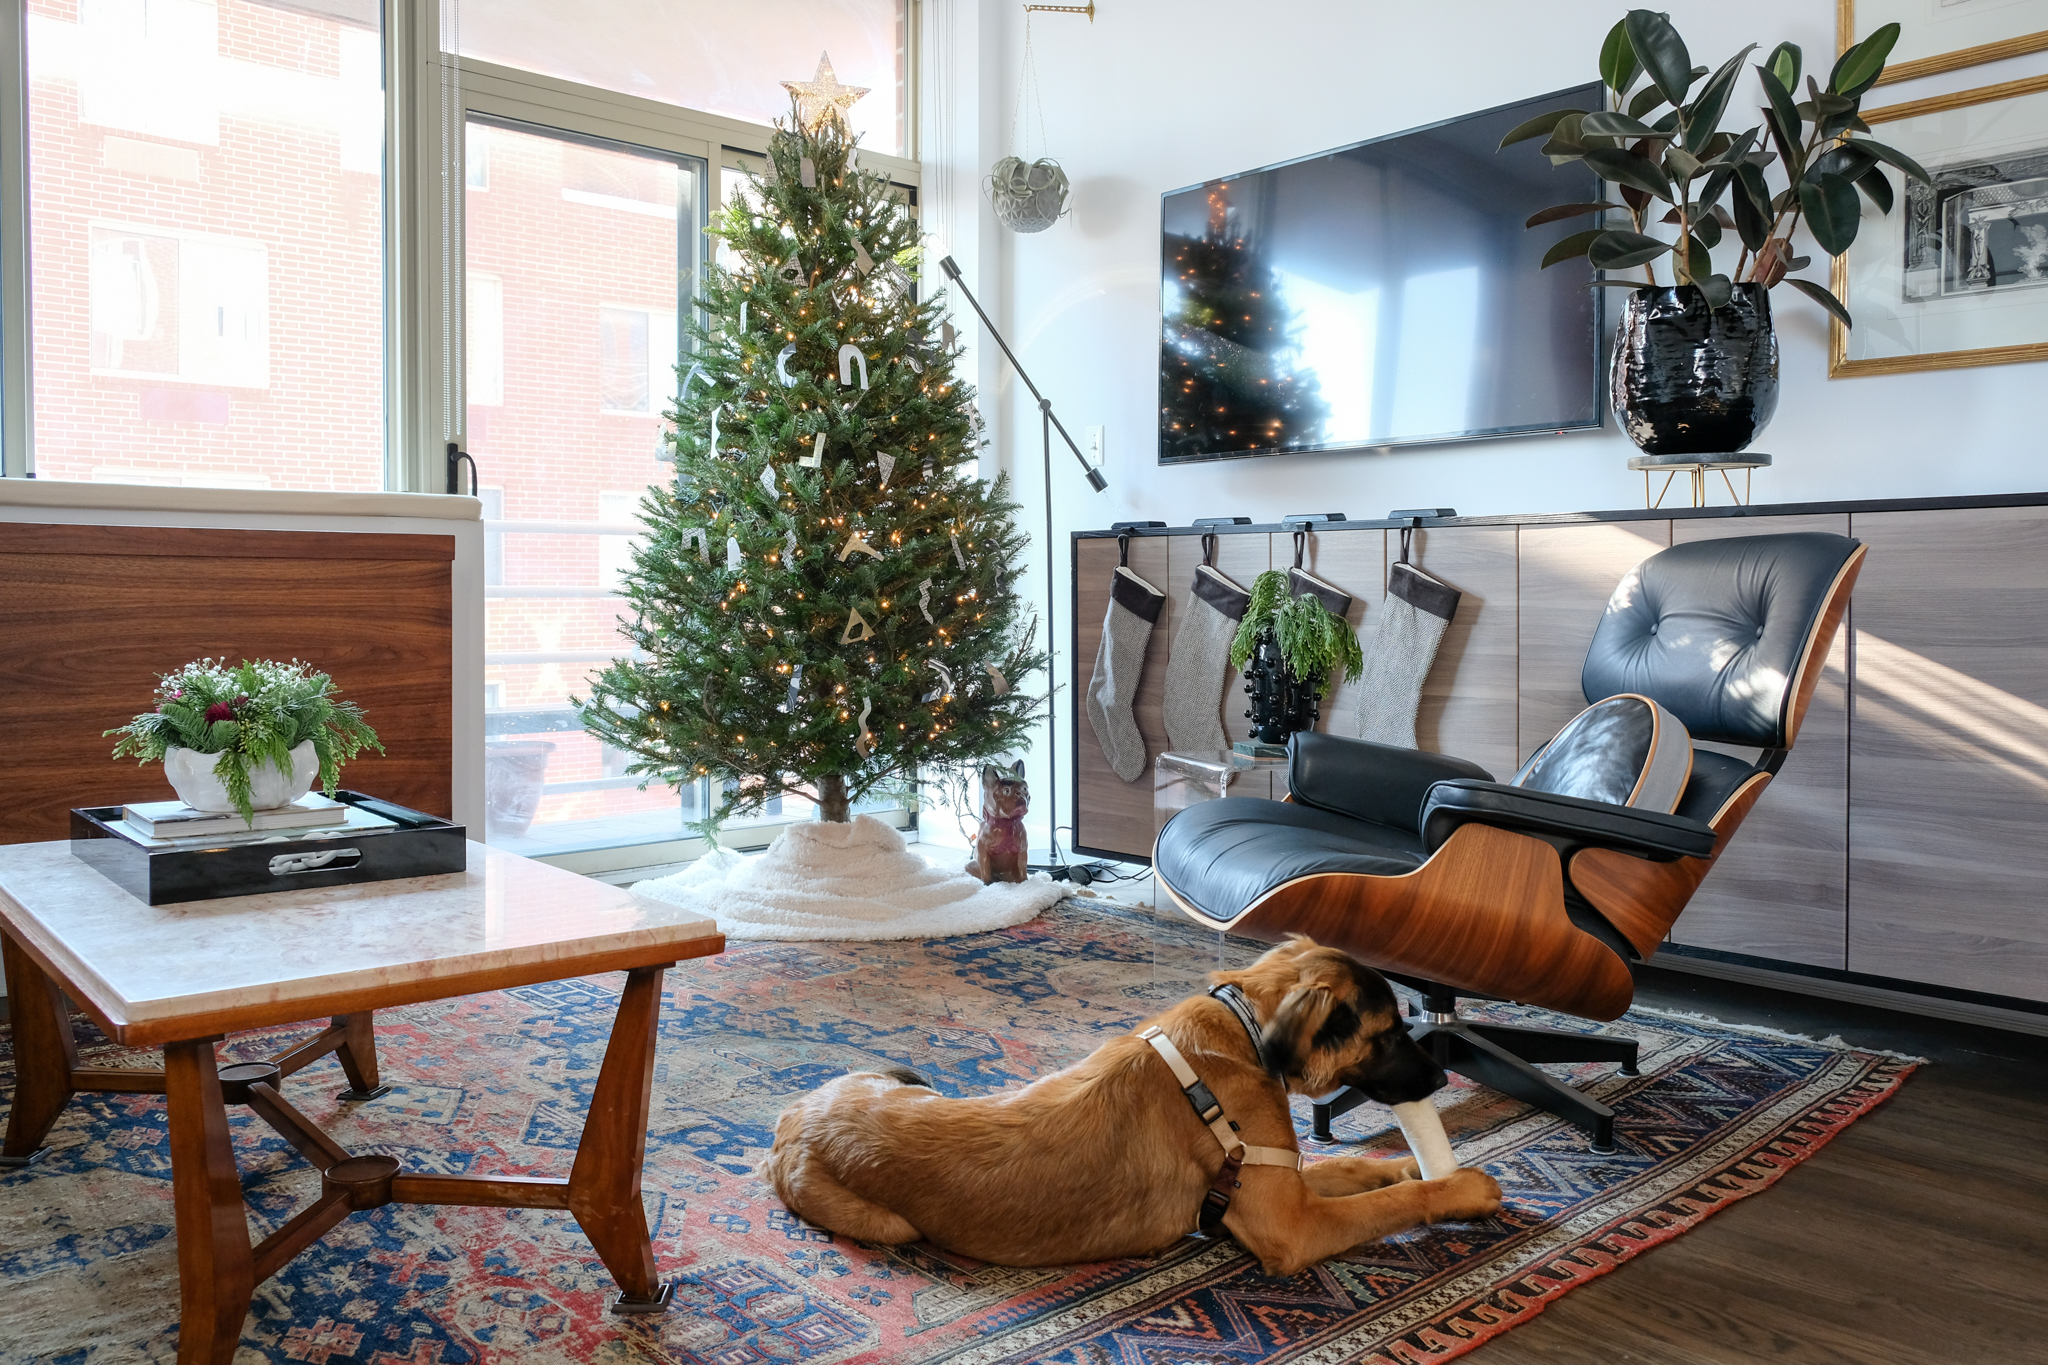 Christmas 2017 at #BKaptstory. It was our puppy  Ivy's  first Christmas!